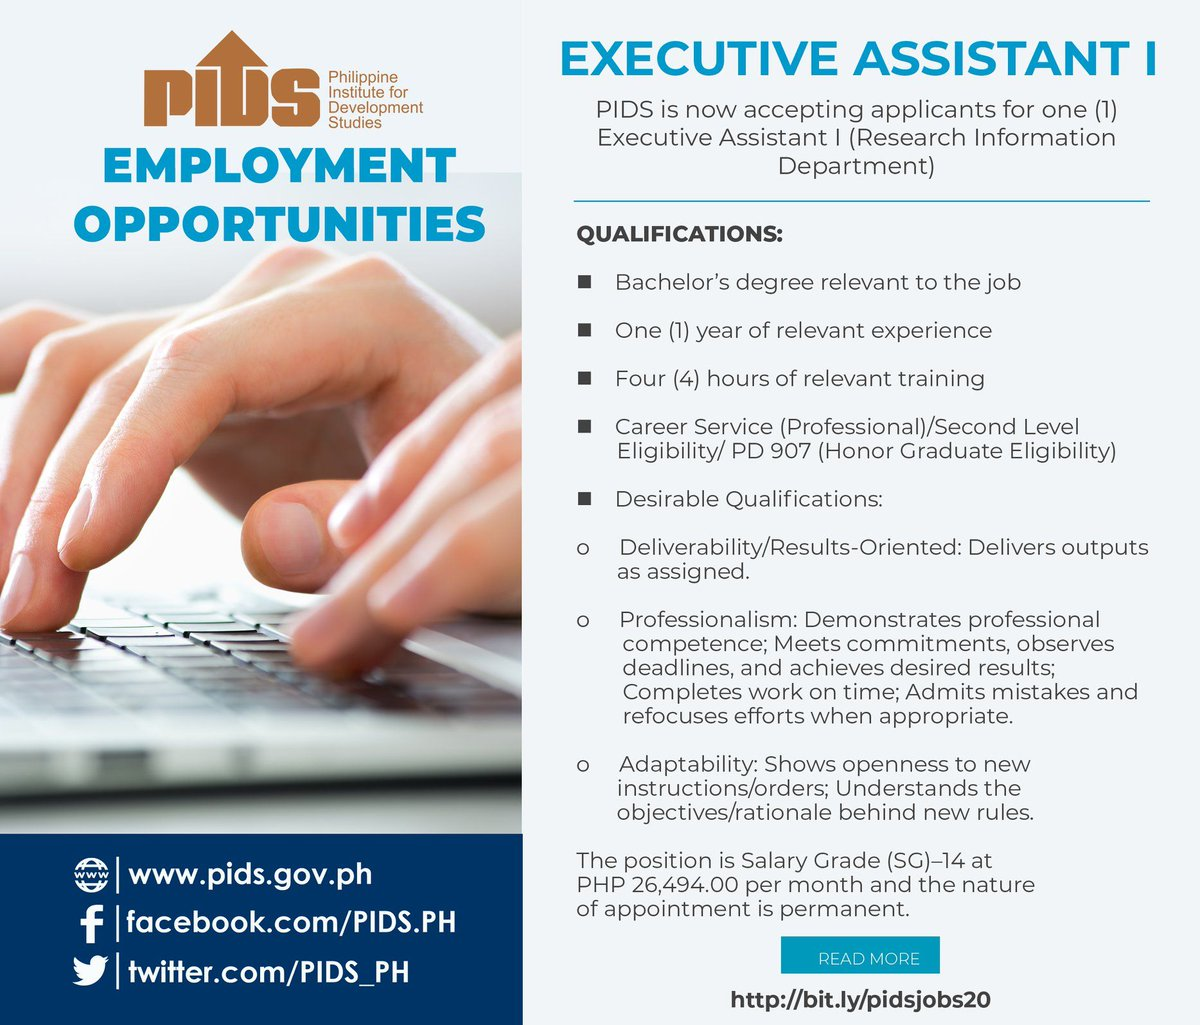 Pidsph On Twitter Pidsjobs Hello Friends Pids Is Now